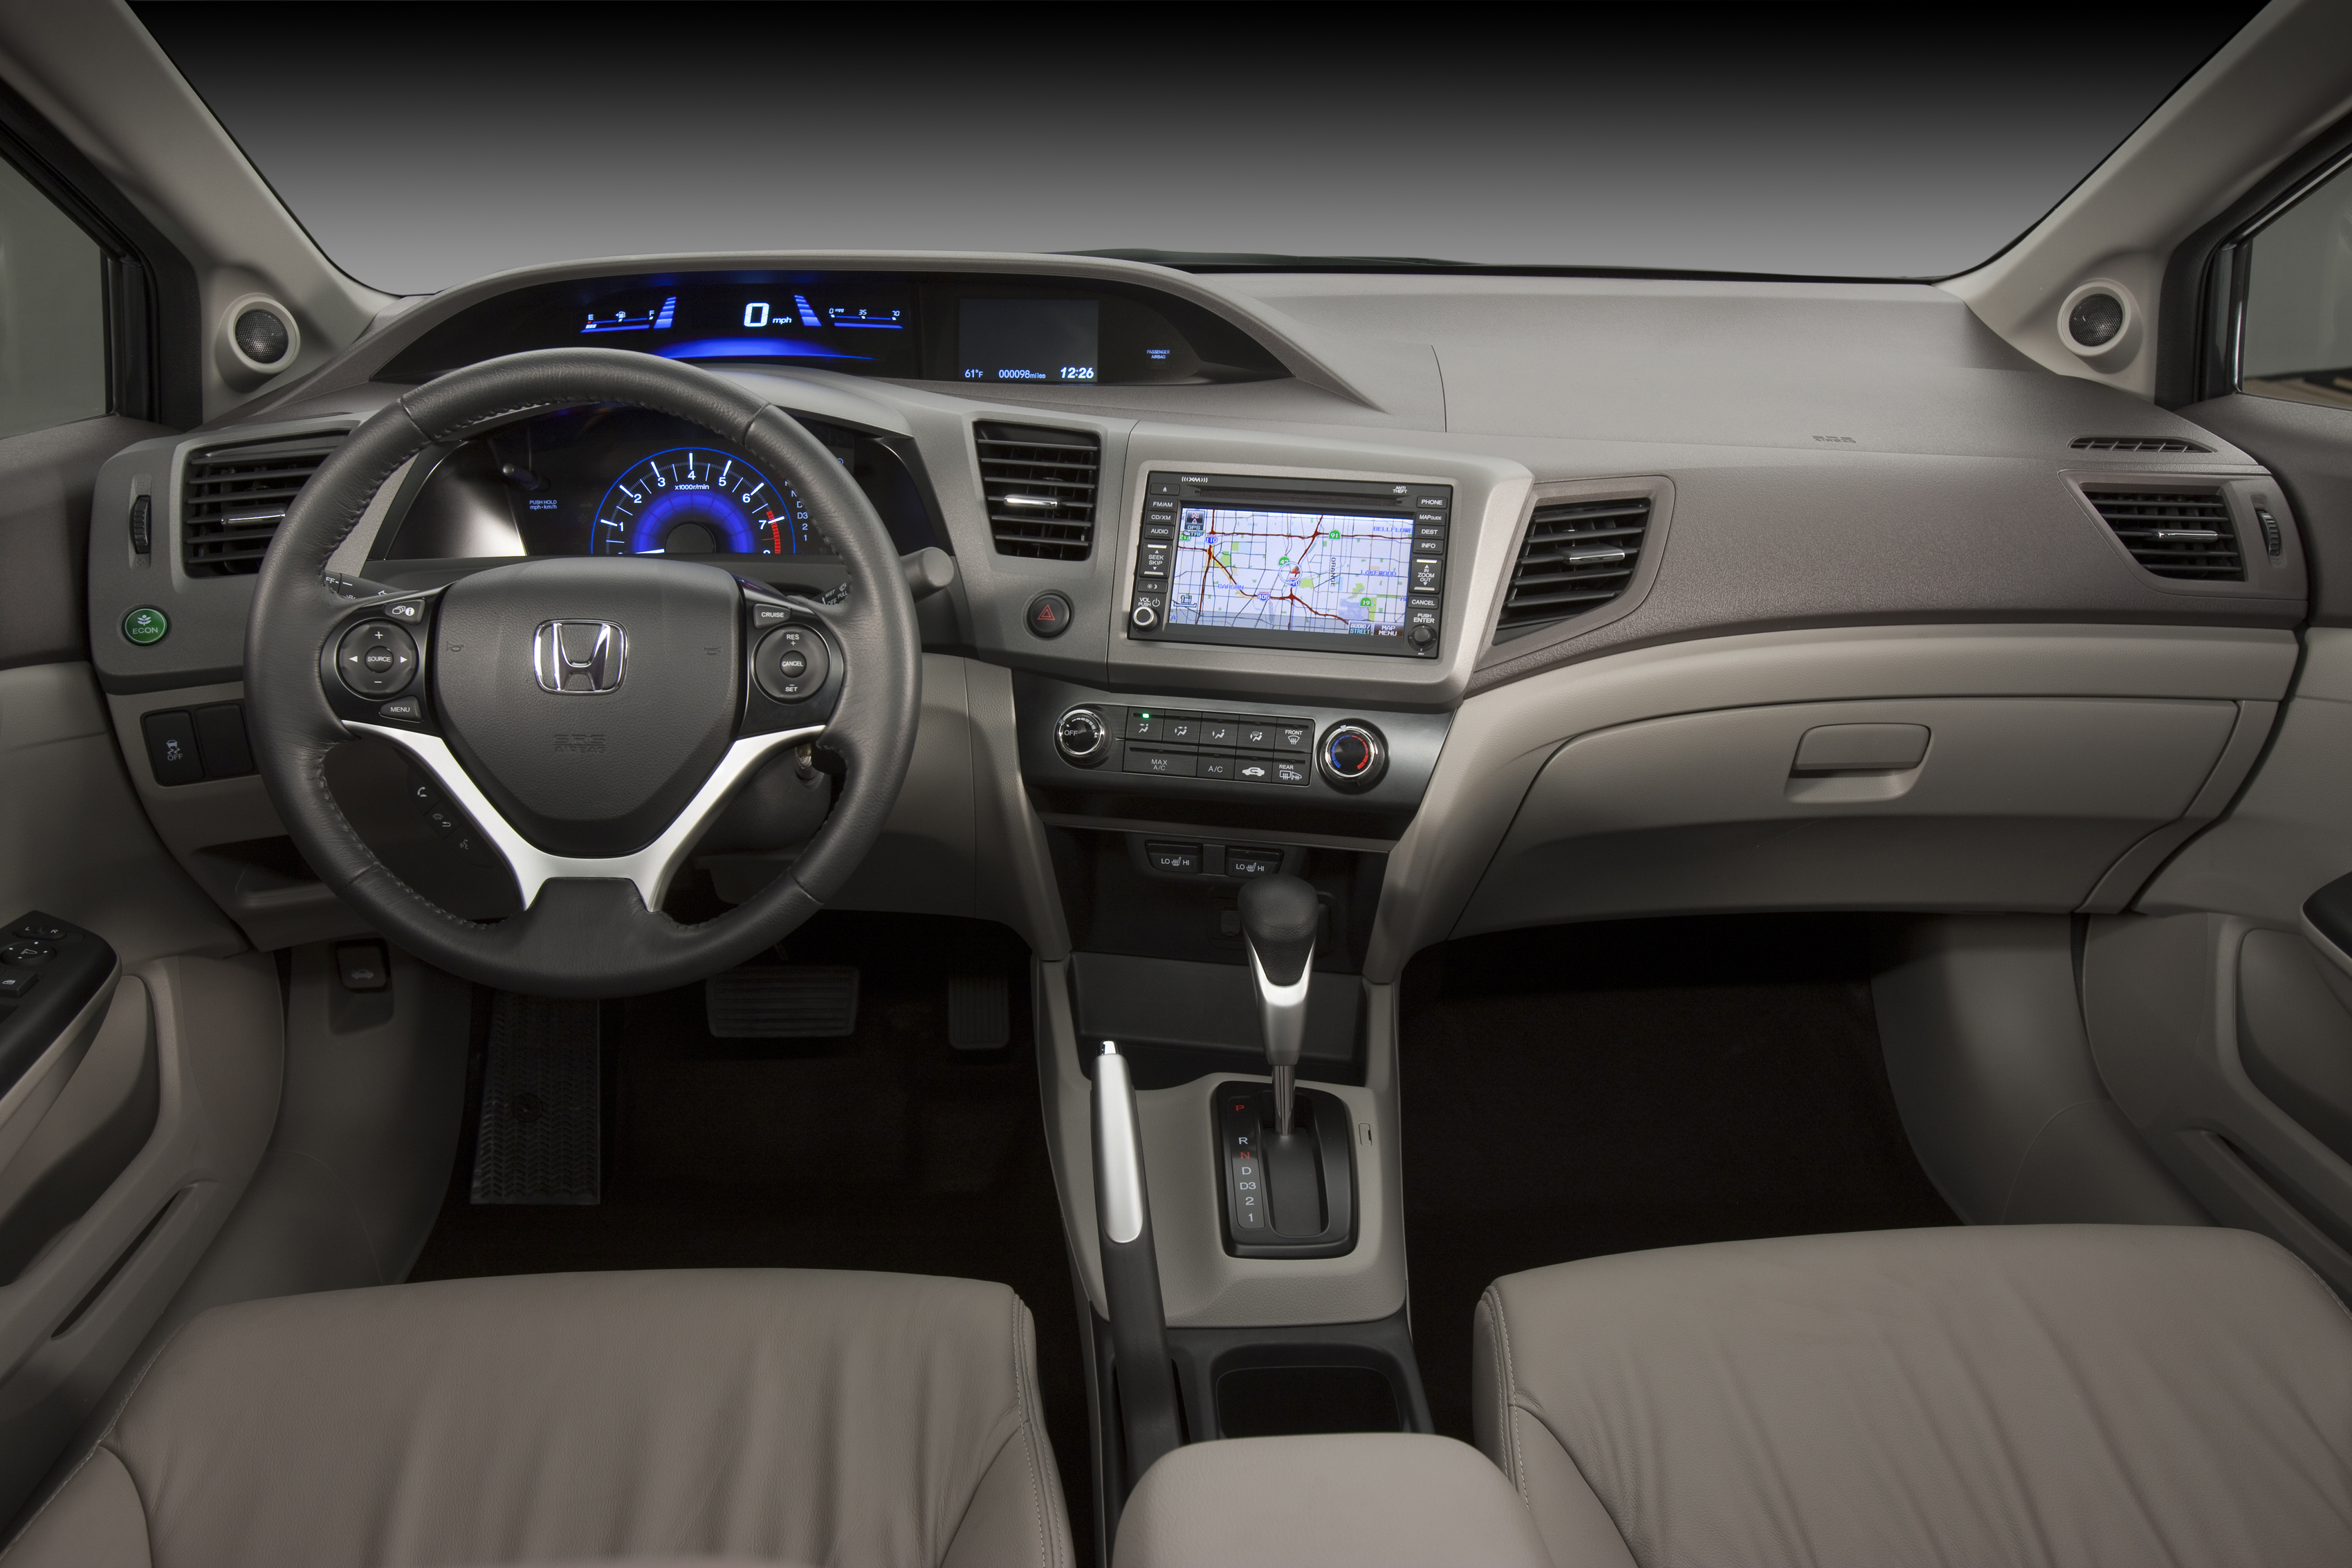 2012 Honda Civic EX L Sedan With Navigation Interior